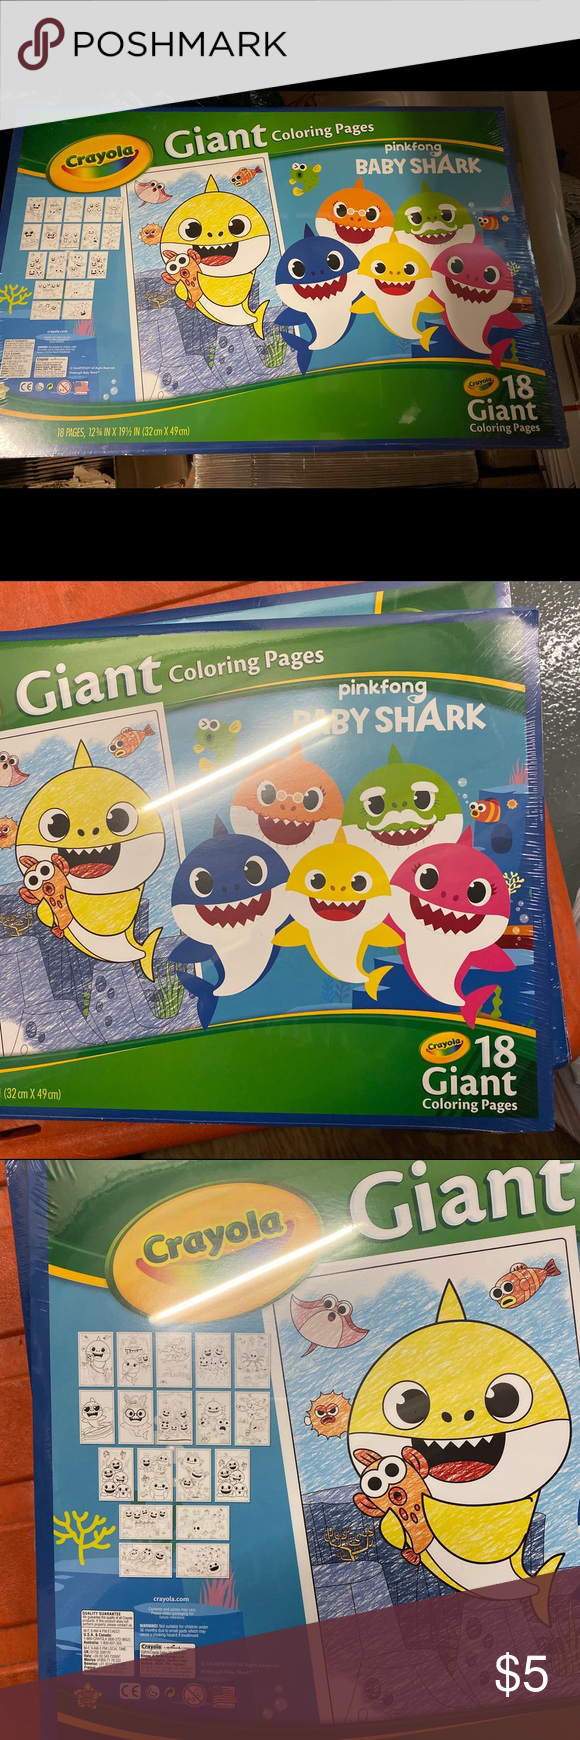 Pinkfong Baby Shark Giant Coloring Book Crayola Baby Shark Coloring Books Shark Party Supplies